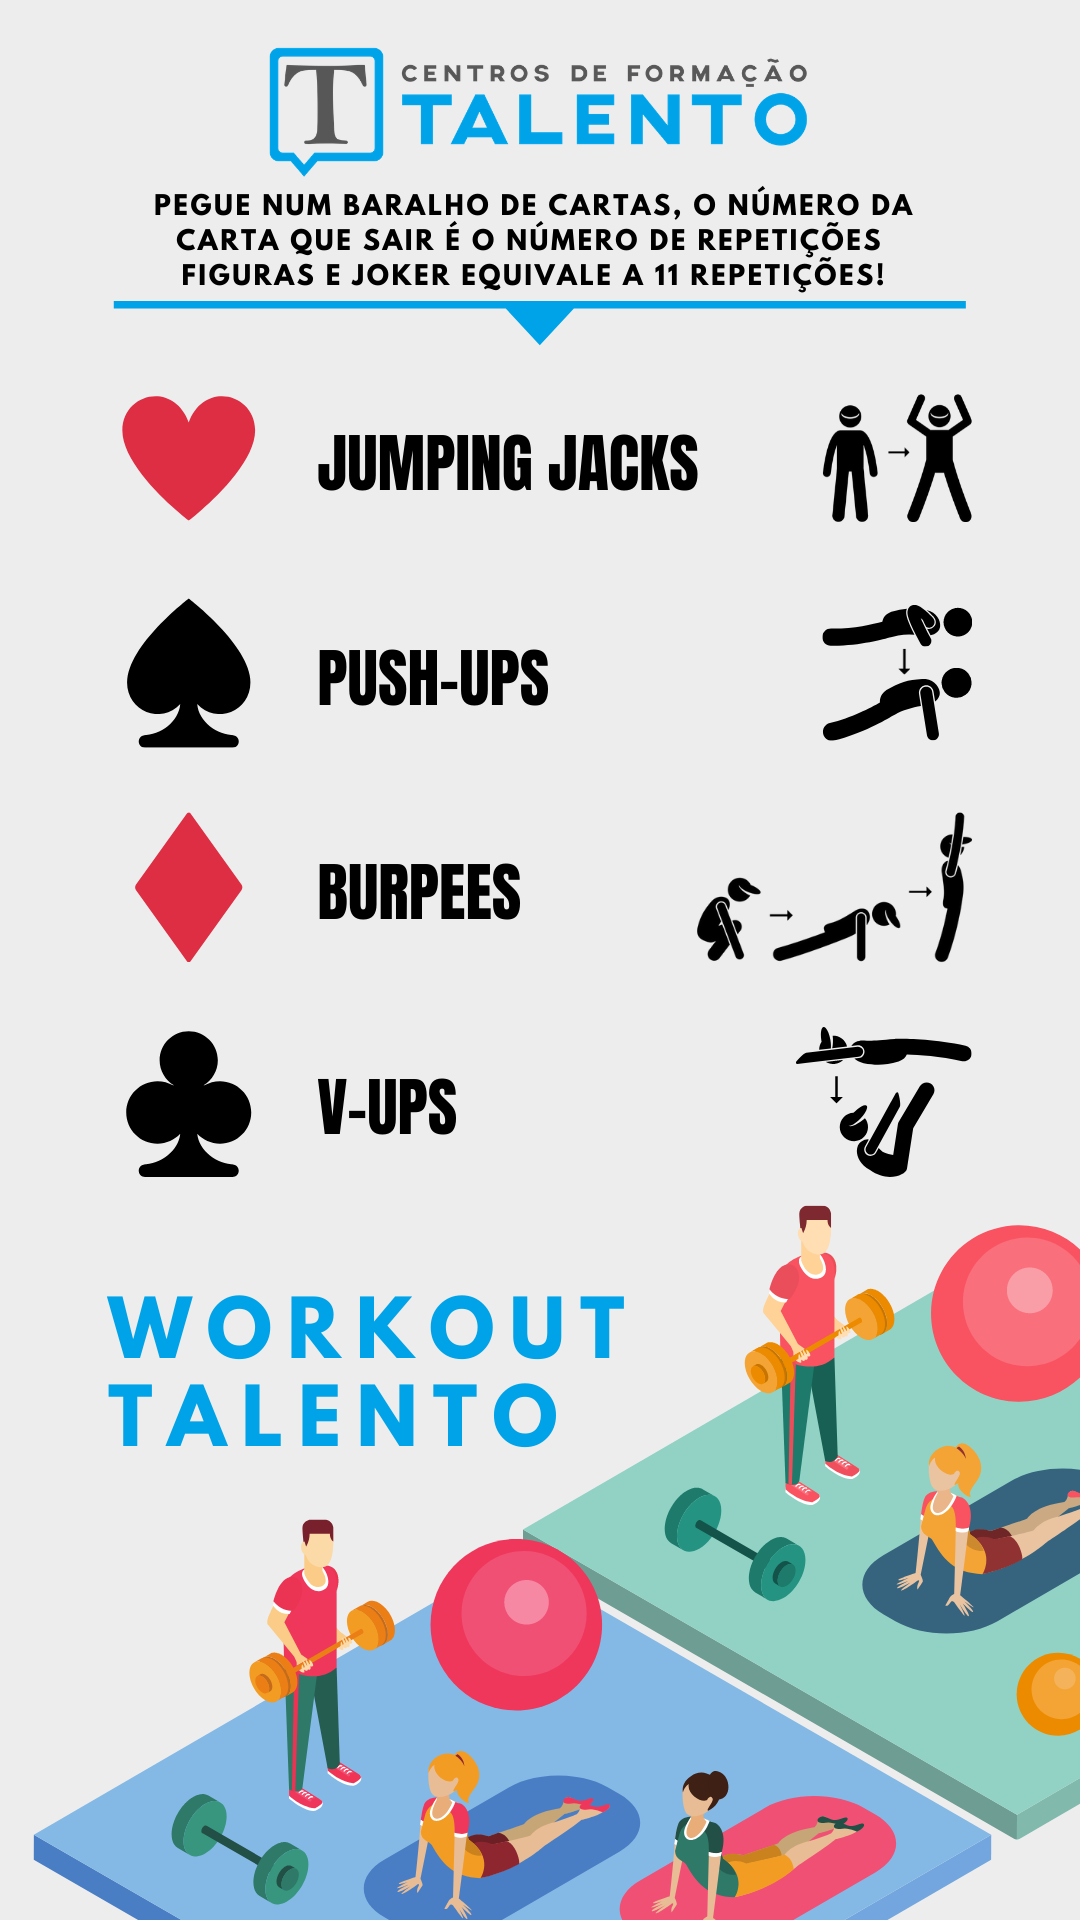 Workout Talento